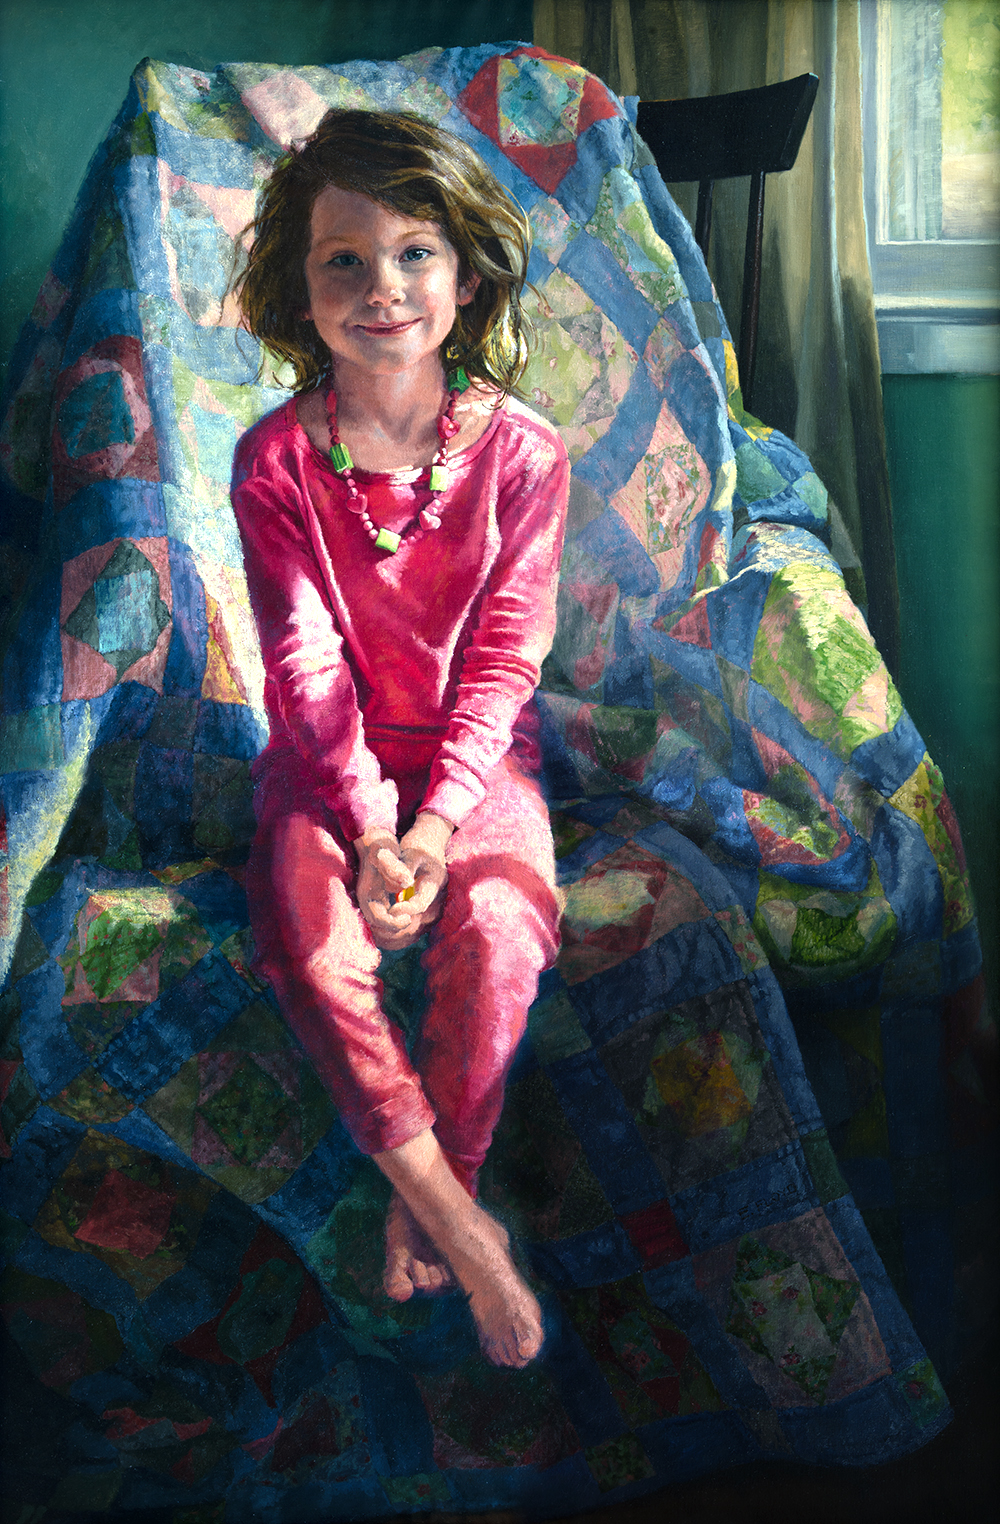 Pink Pajamas, 48 x 32 inches, oil on linen